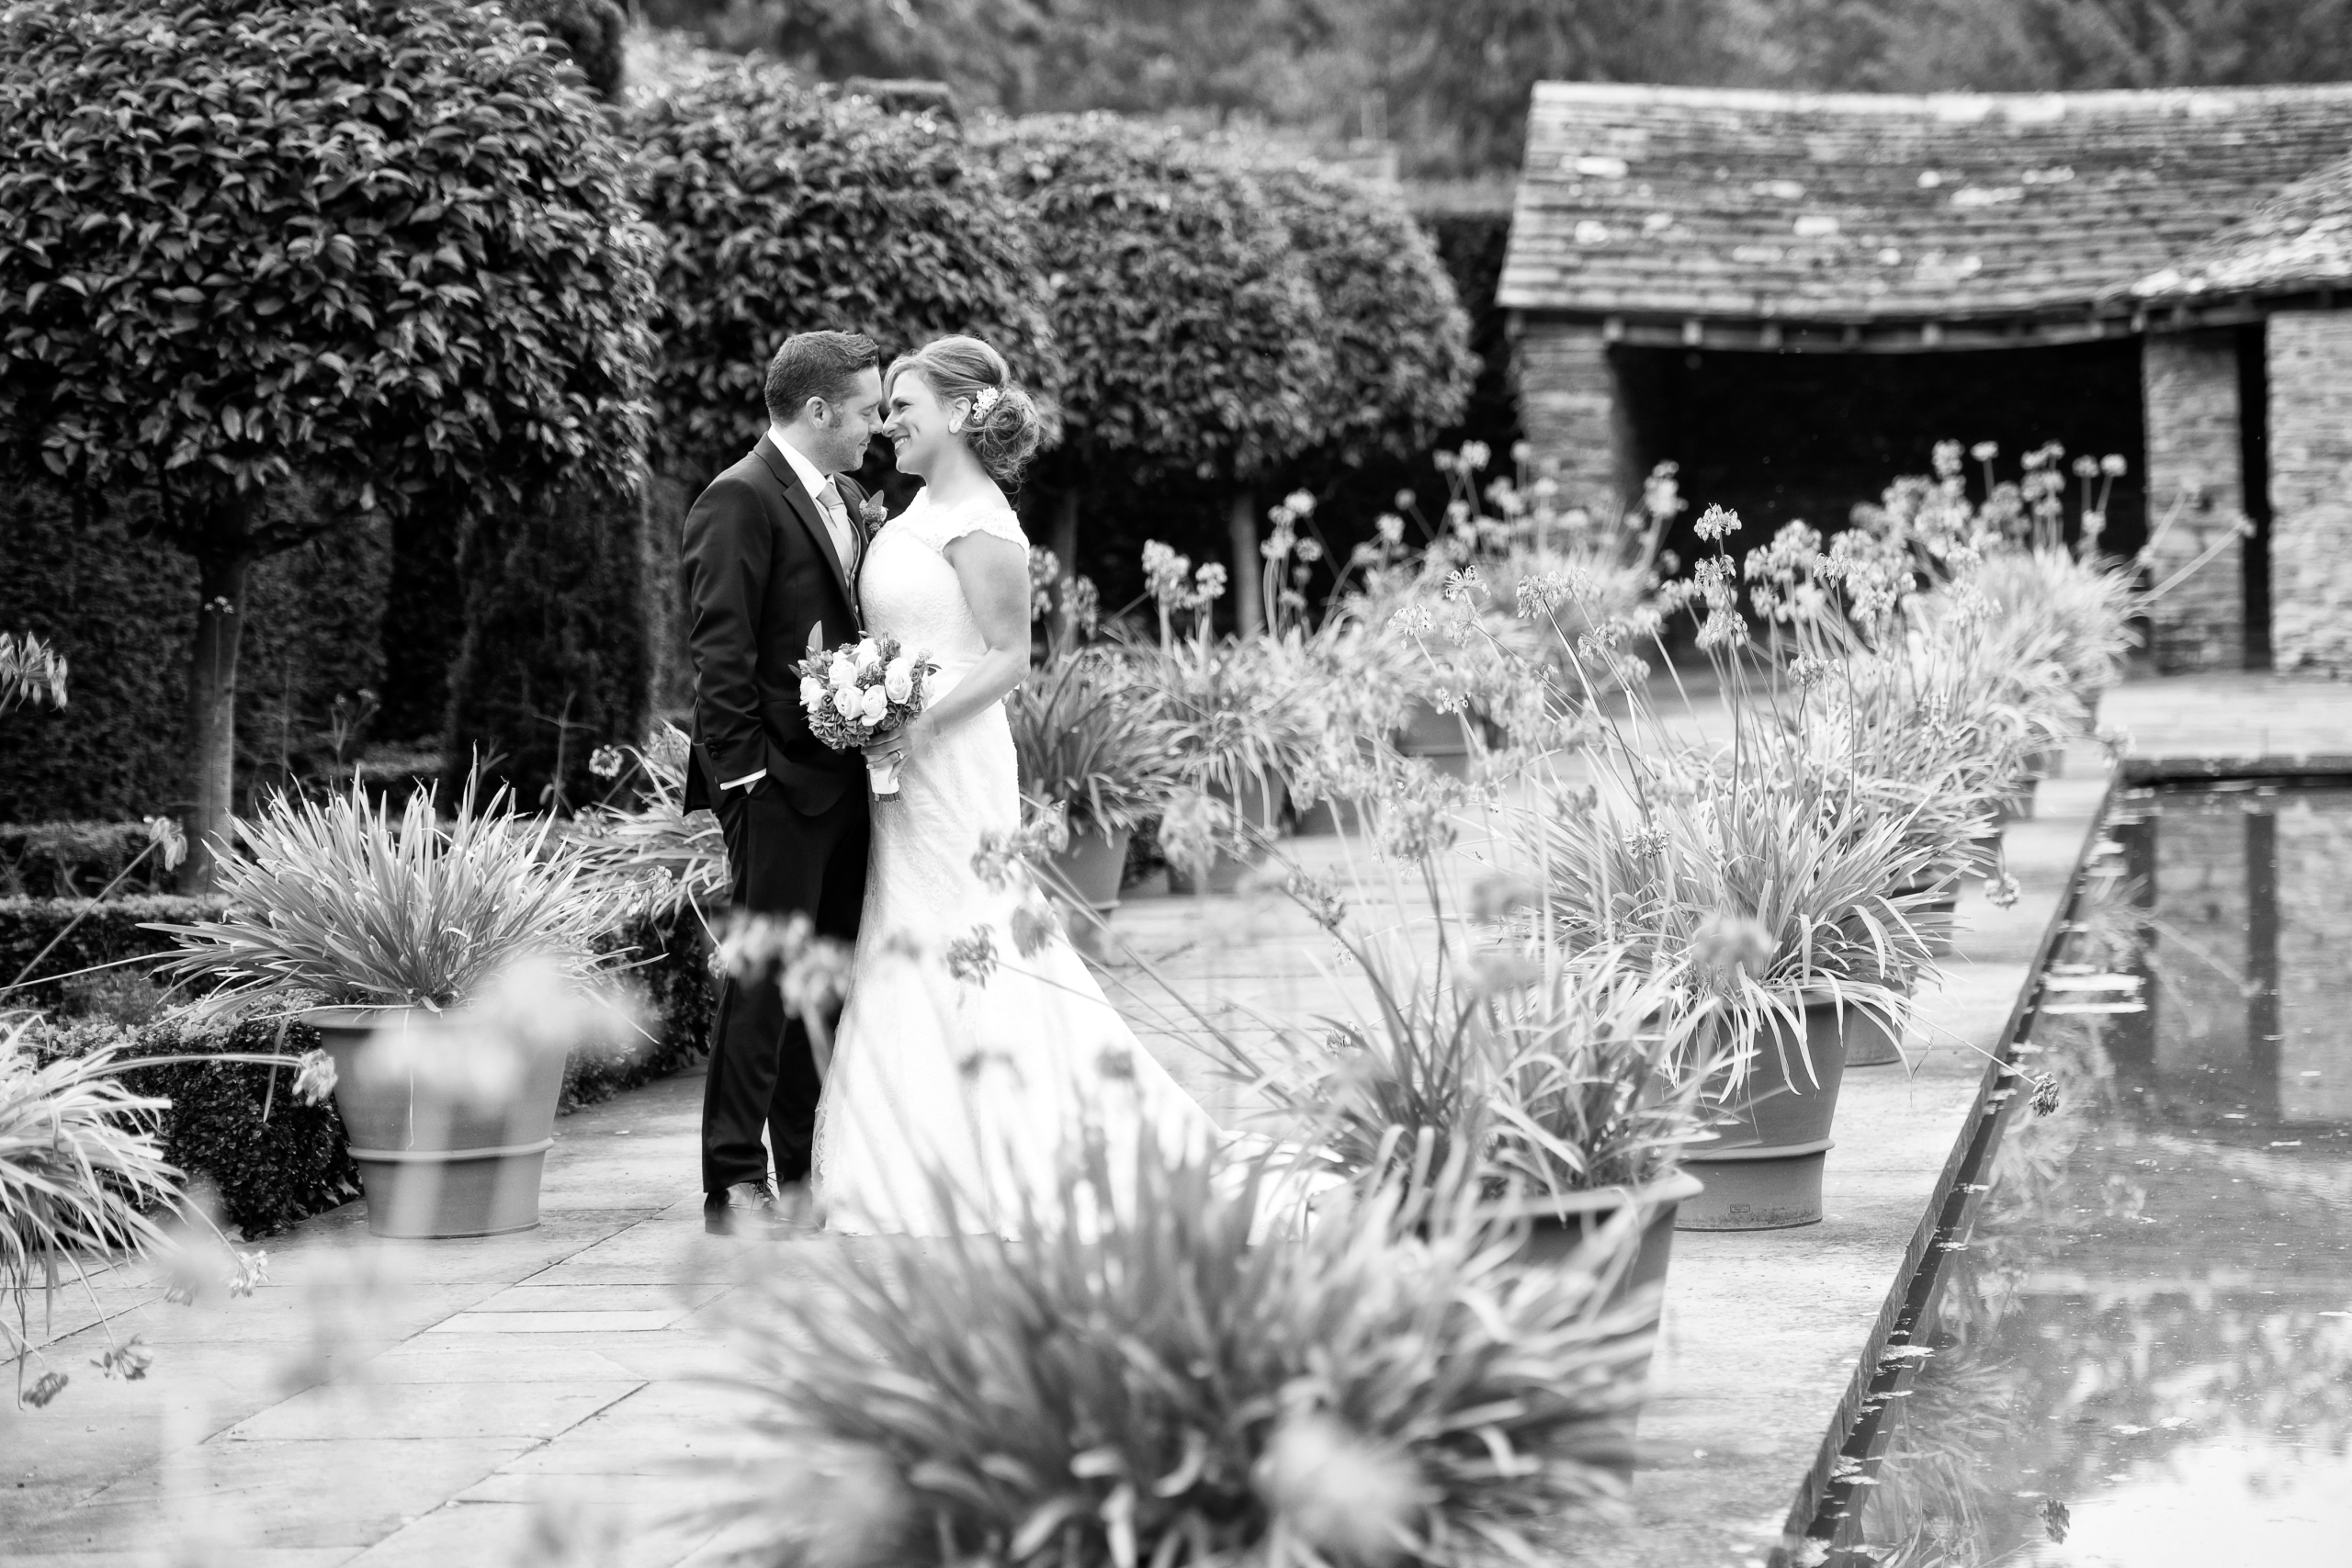 A black and white photo of a bride and groom with pots of flowers stretching alongside them.